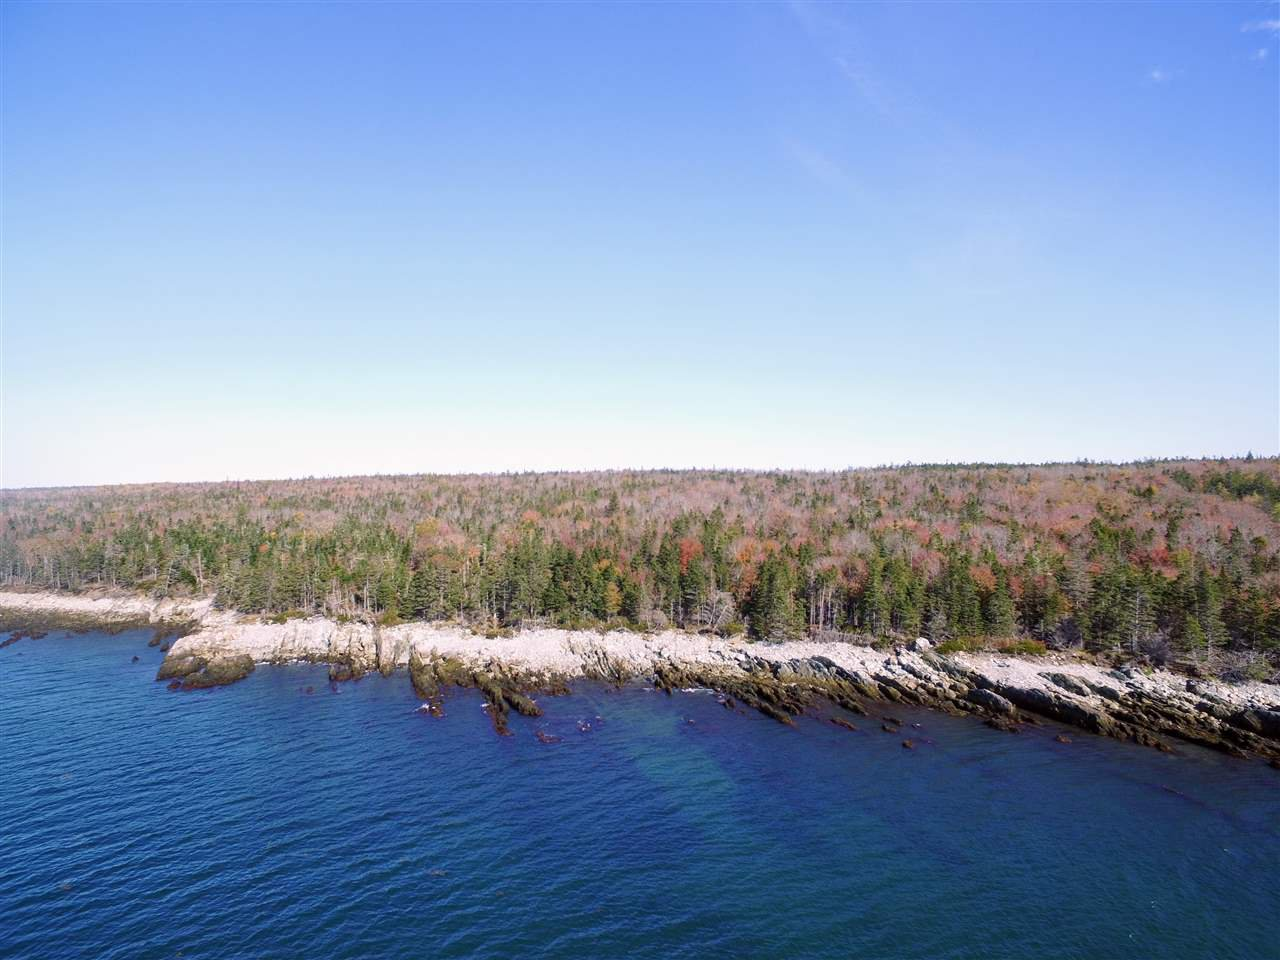 Main Photo: Lots 1-8 Benhams Road in East Jordan: 407-Shelburne County Vacant Land for sale (South Shore)  : MLS®# 202023596